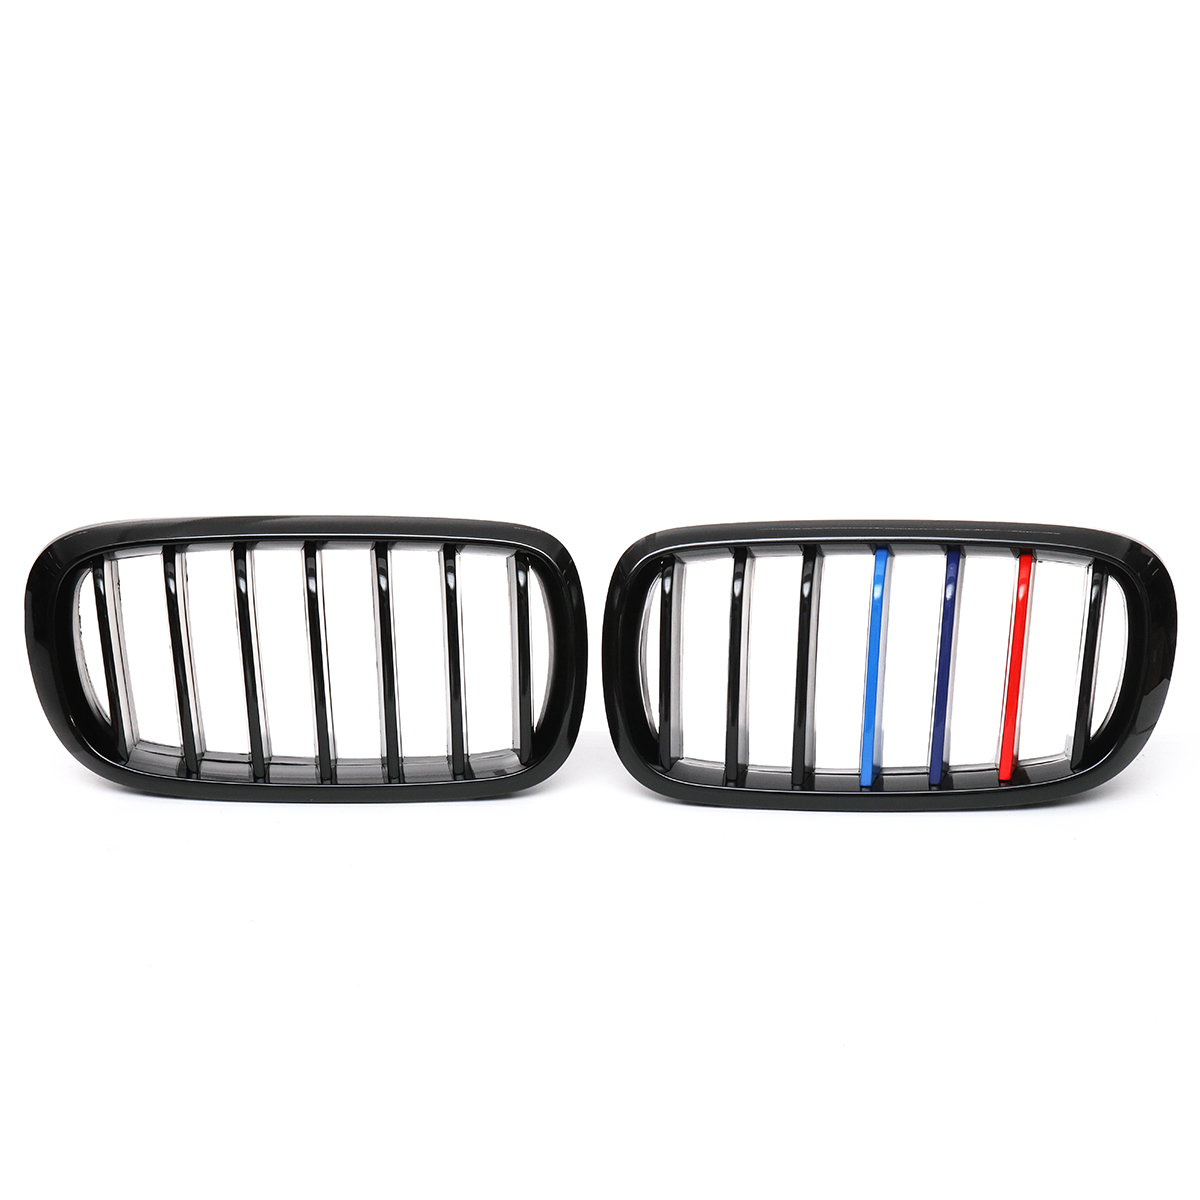 Gloss Black M-Color Front Kidney Grill Grille For BMW F86 F15 F16 X5 X5M 14-17